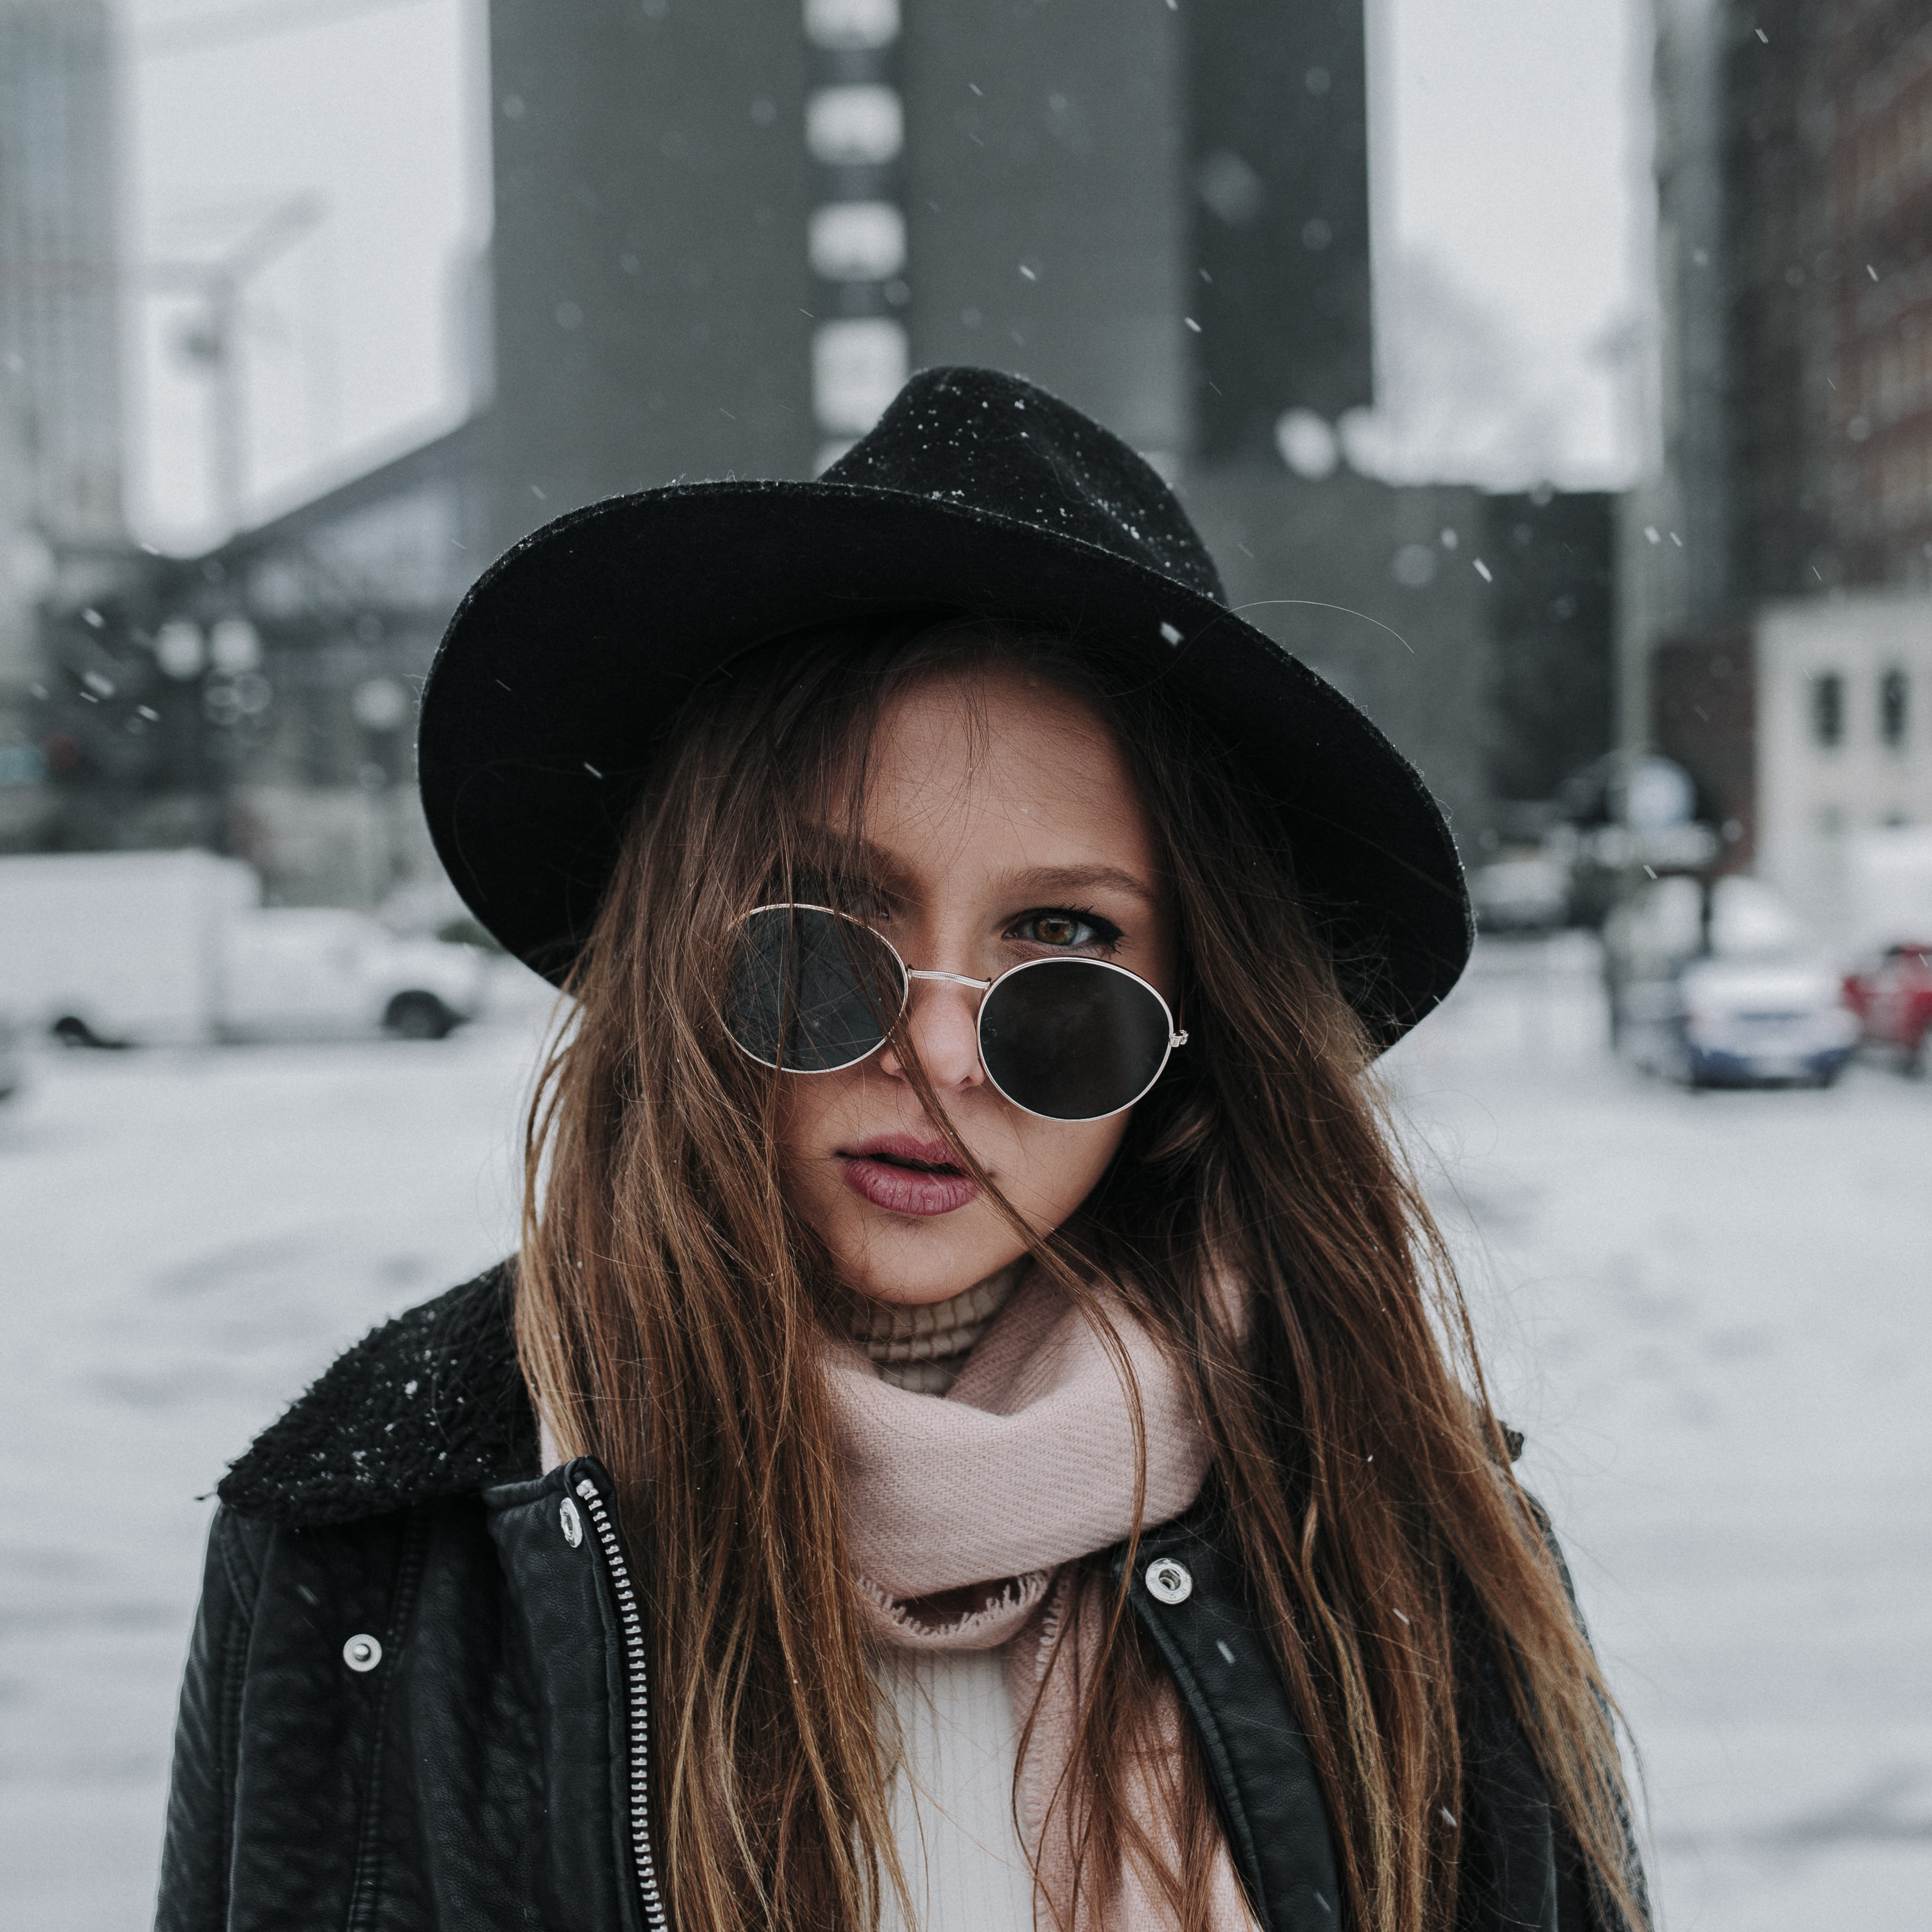 shallow focus photography of woman wearing hat while snowing